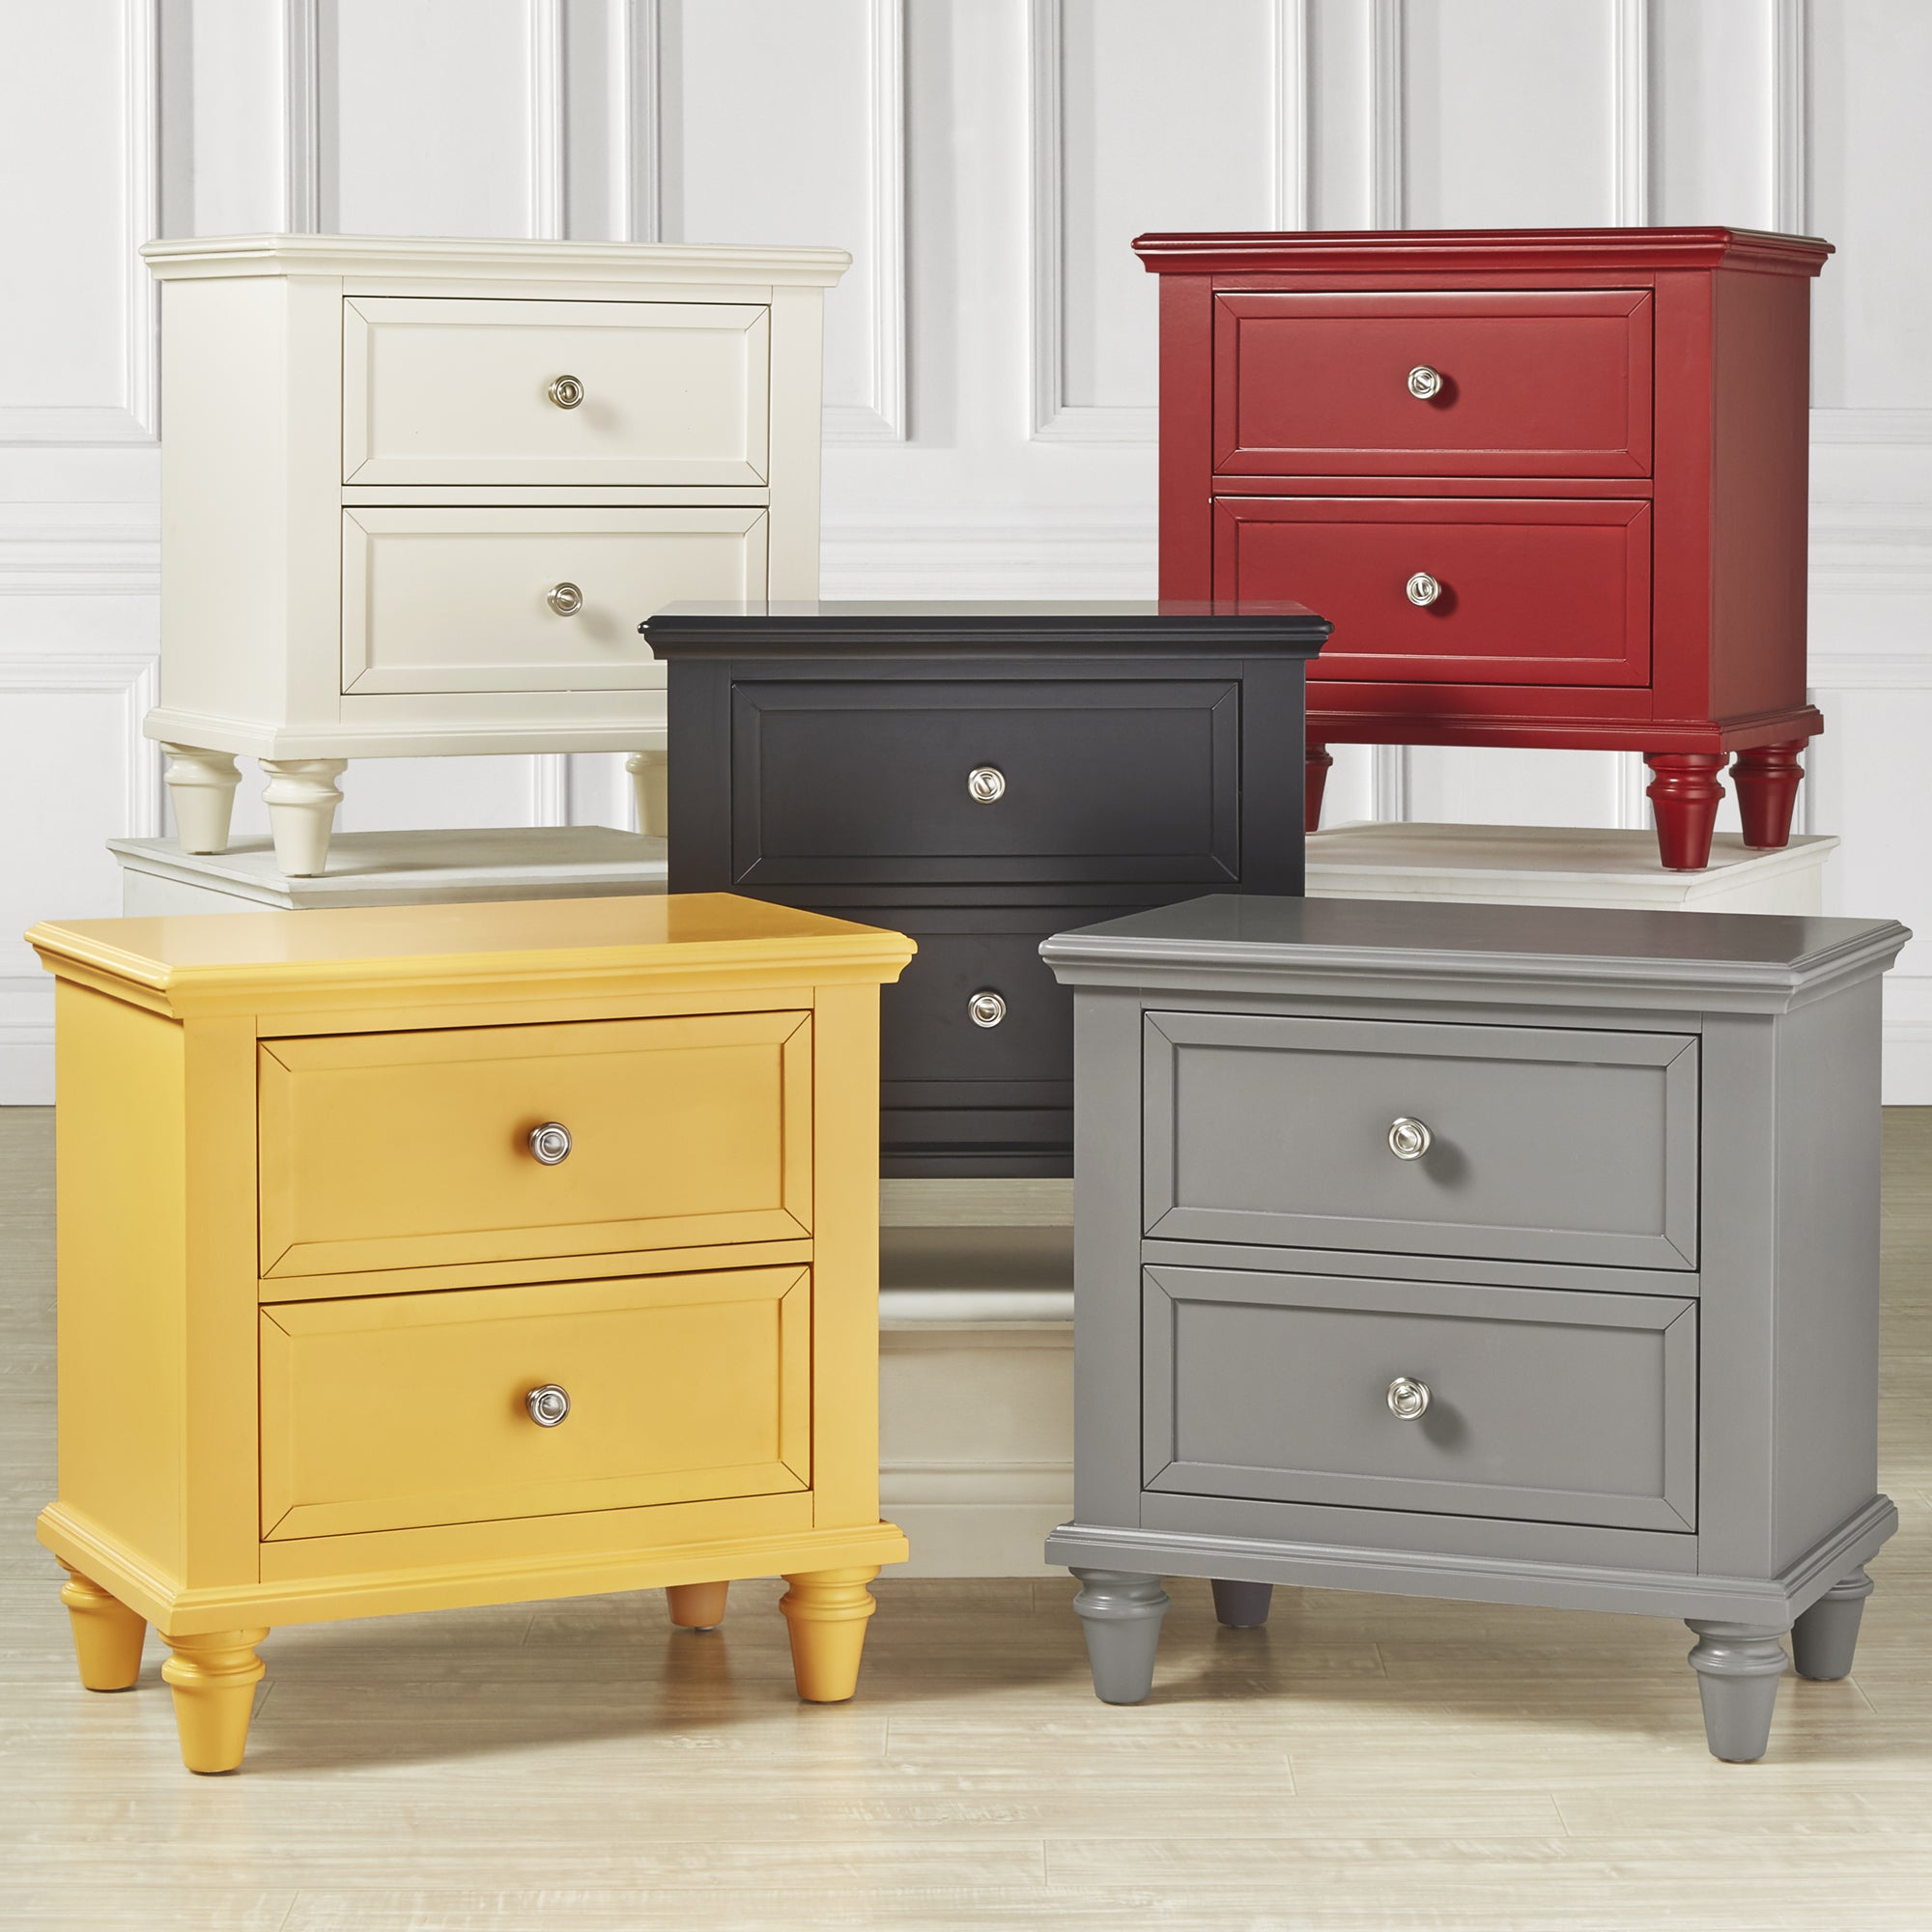 Preston 2 Drawer Side Table Nightstand By Inspire Q Junior On Free Shipping Today 11775920